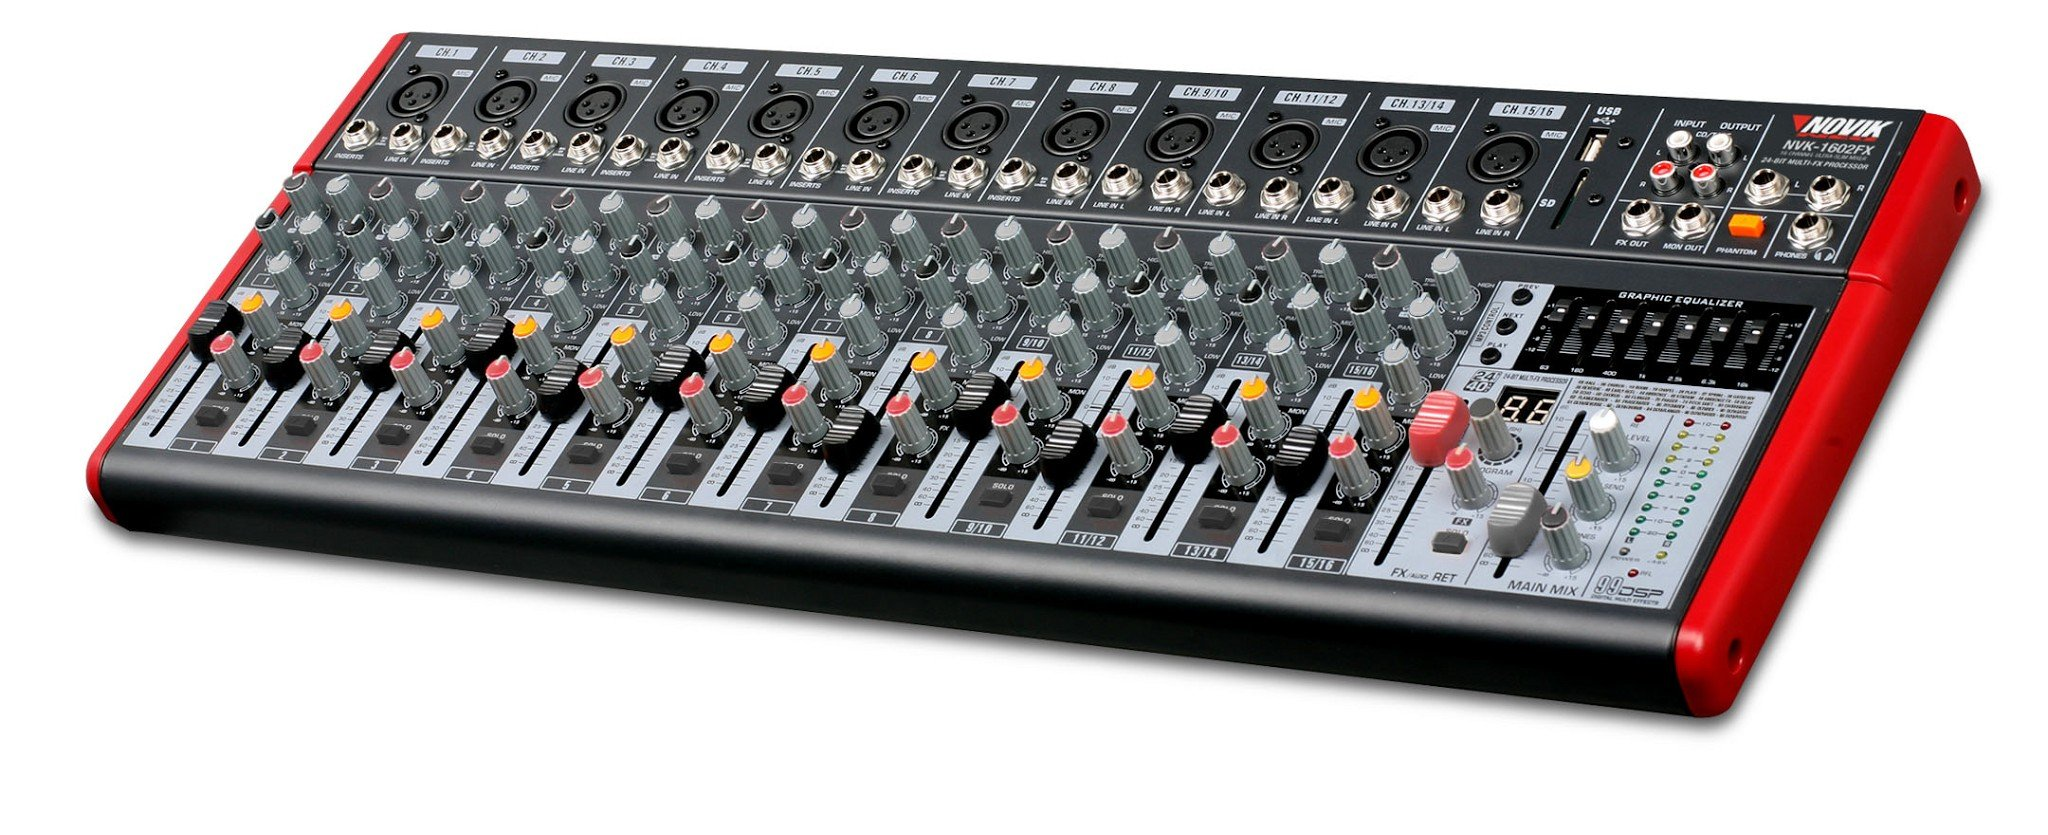 NOVIK NEO MIXER NVK 1602FX 16 Channel Ultra-Slim 12 channels with pre-amplifiers of Mic and Phantom Power (+48v) 4 channels Stereo